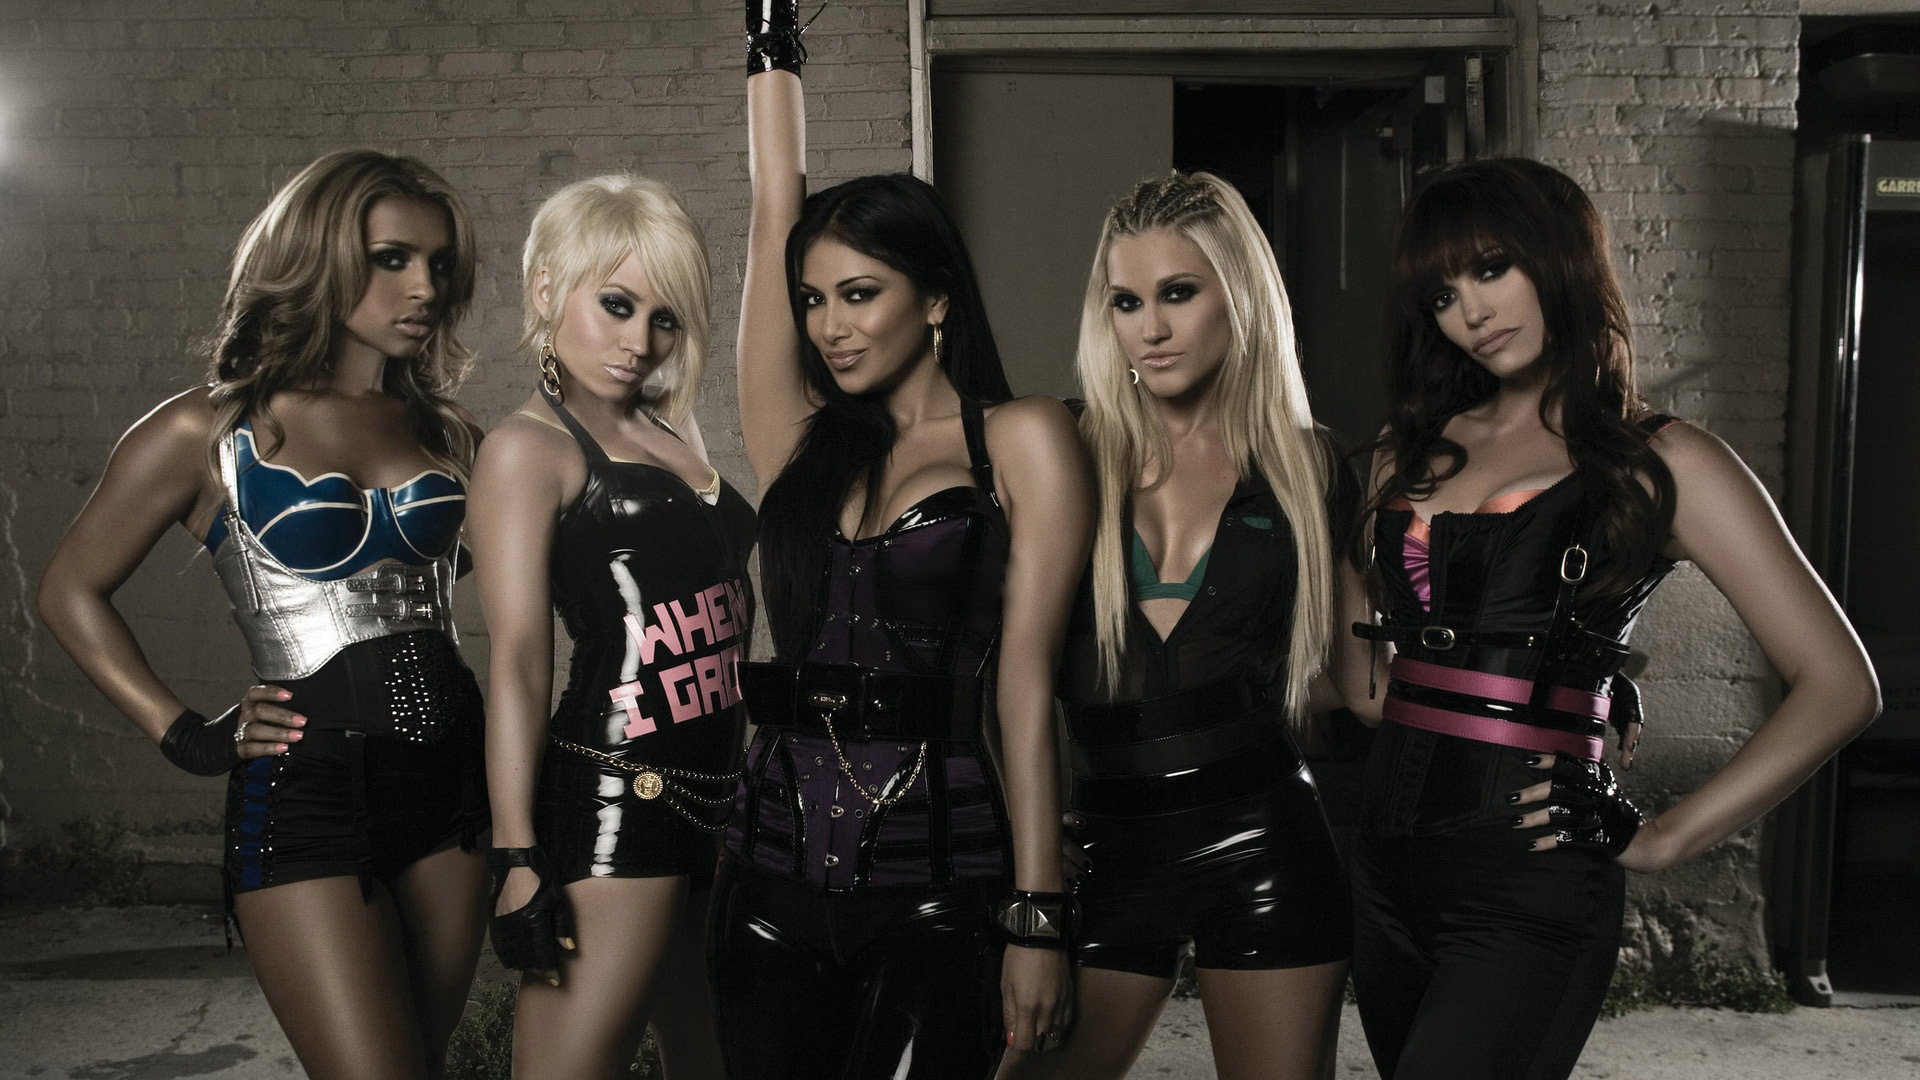 The pussycat dolls get soaking wet in pvc bodysuits in hot new photo teaser